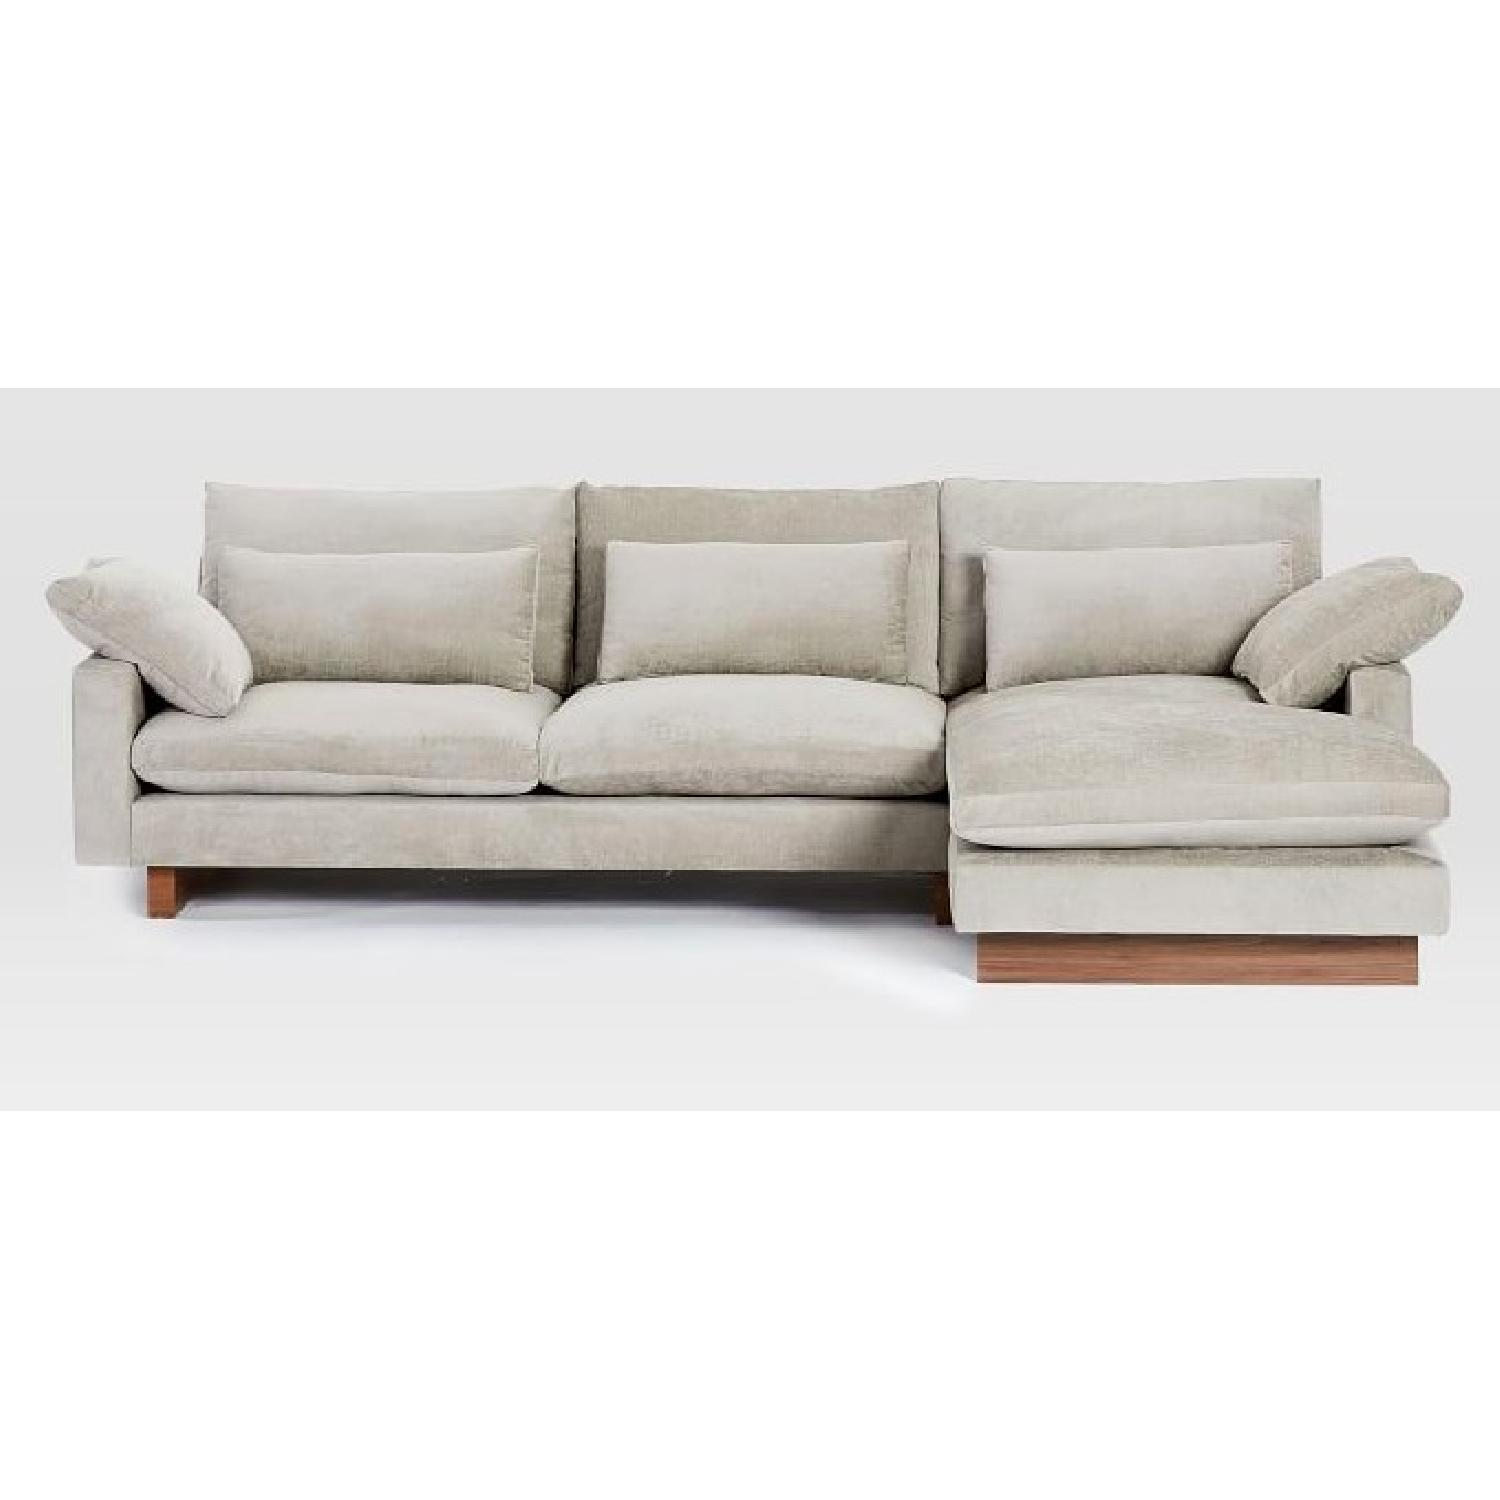 West Elm 2-Piece Large Chaise Sectional Sofa - image-1